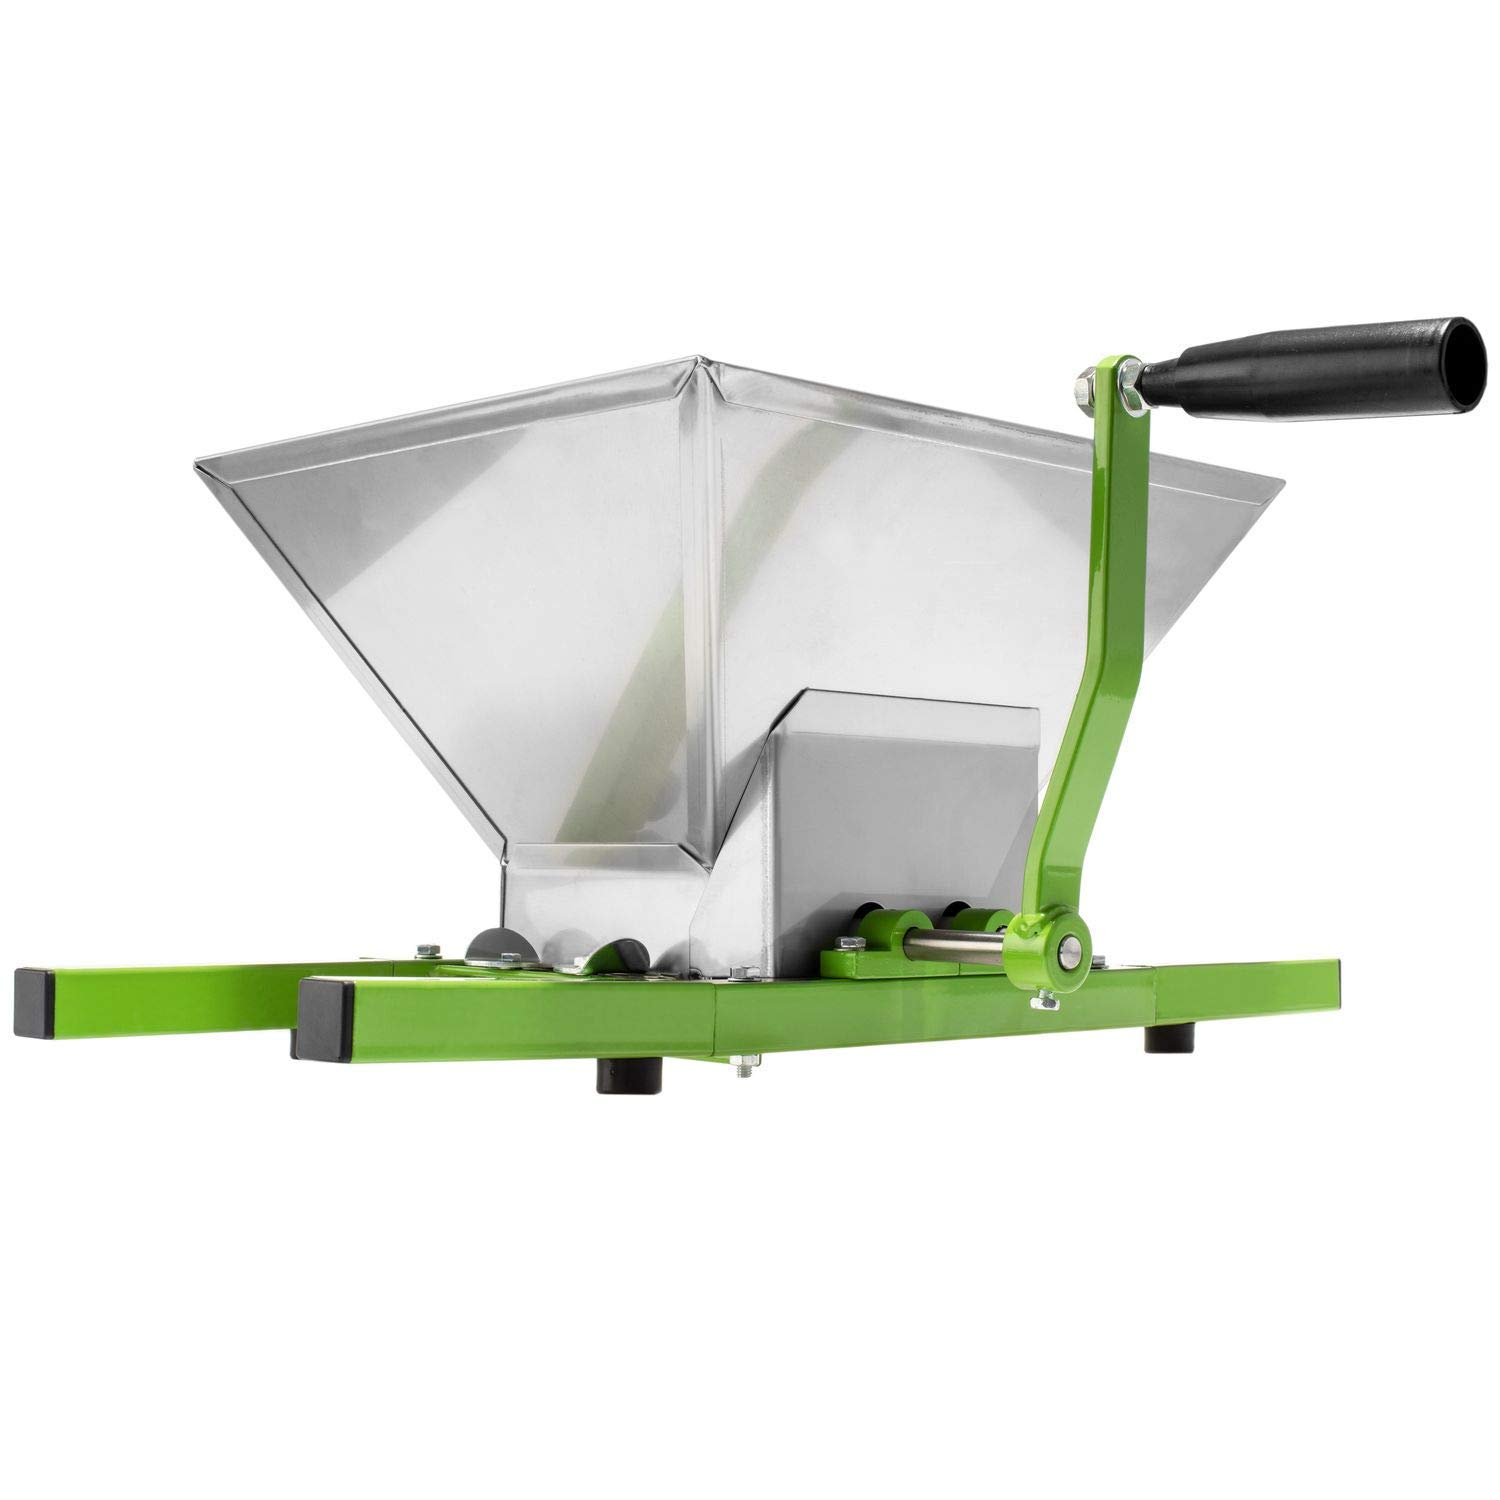 LFGB Approved 1.85 Gallon Stainless Steel Fruit Crusher Portable ...